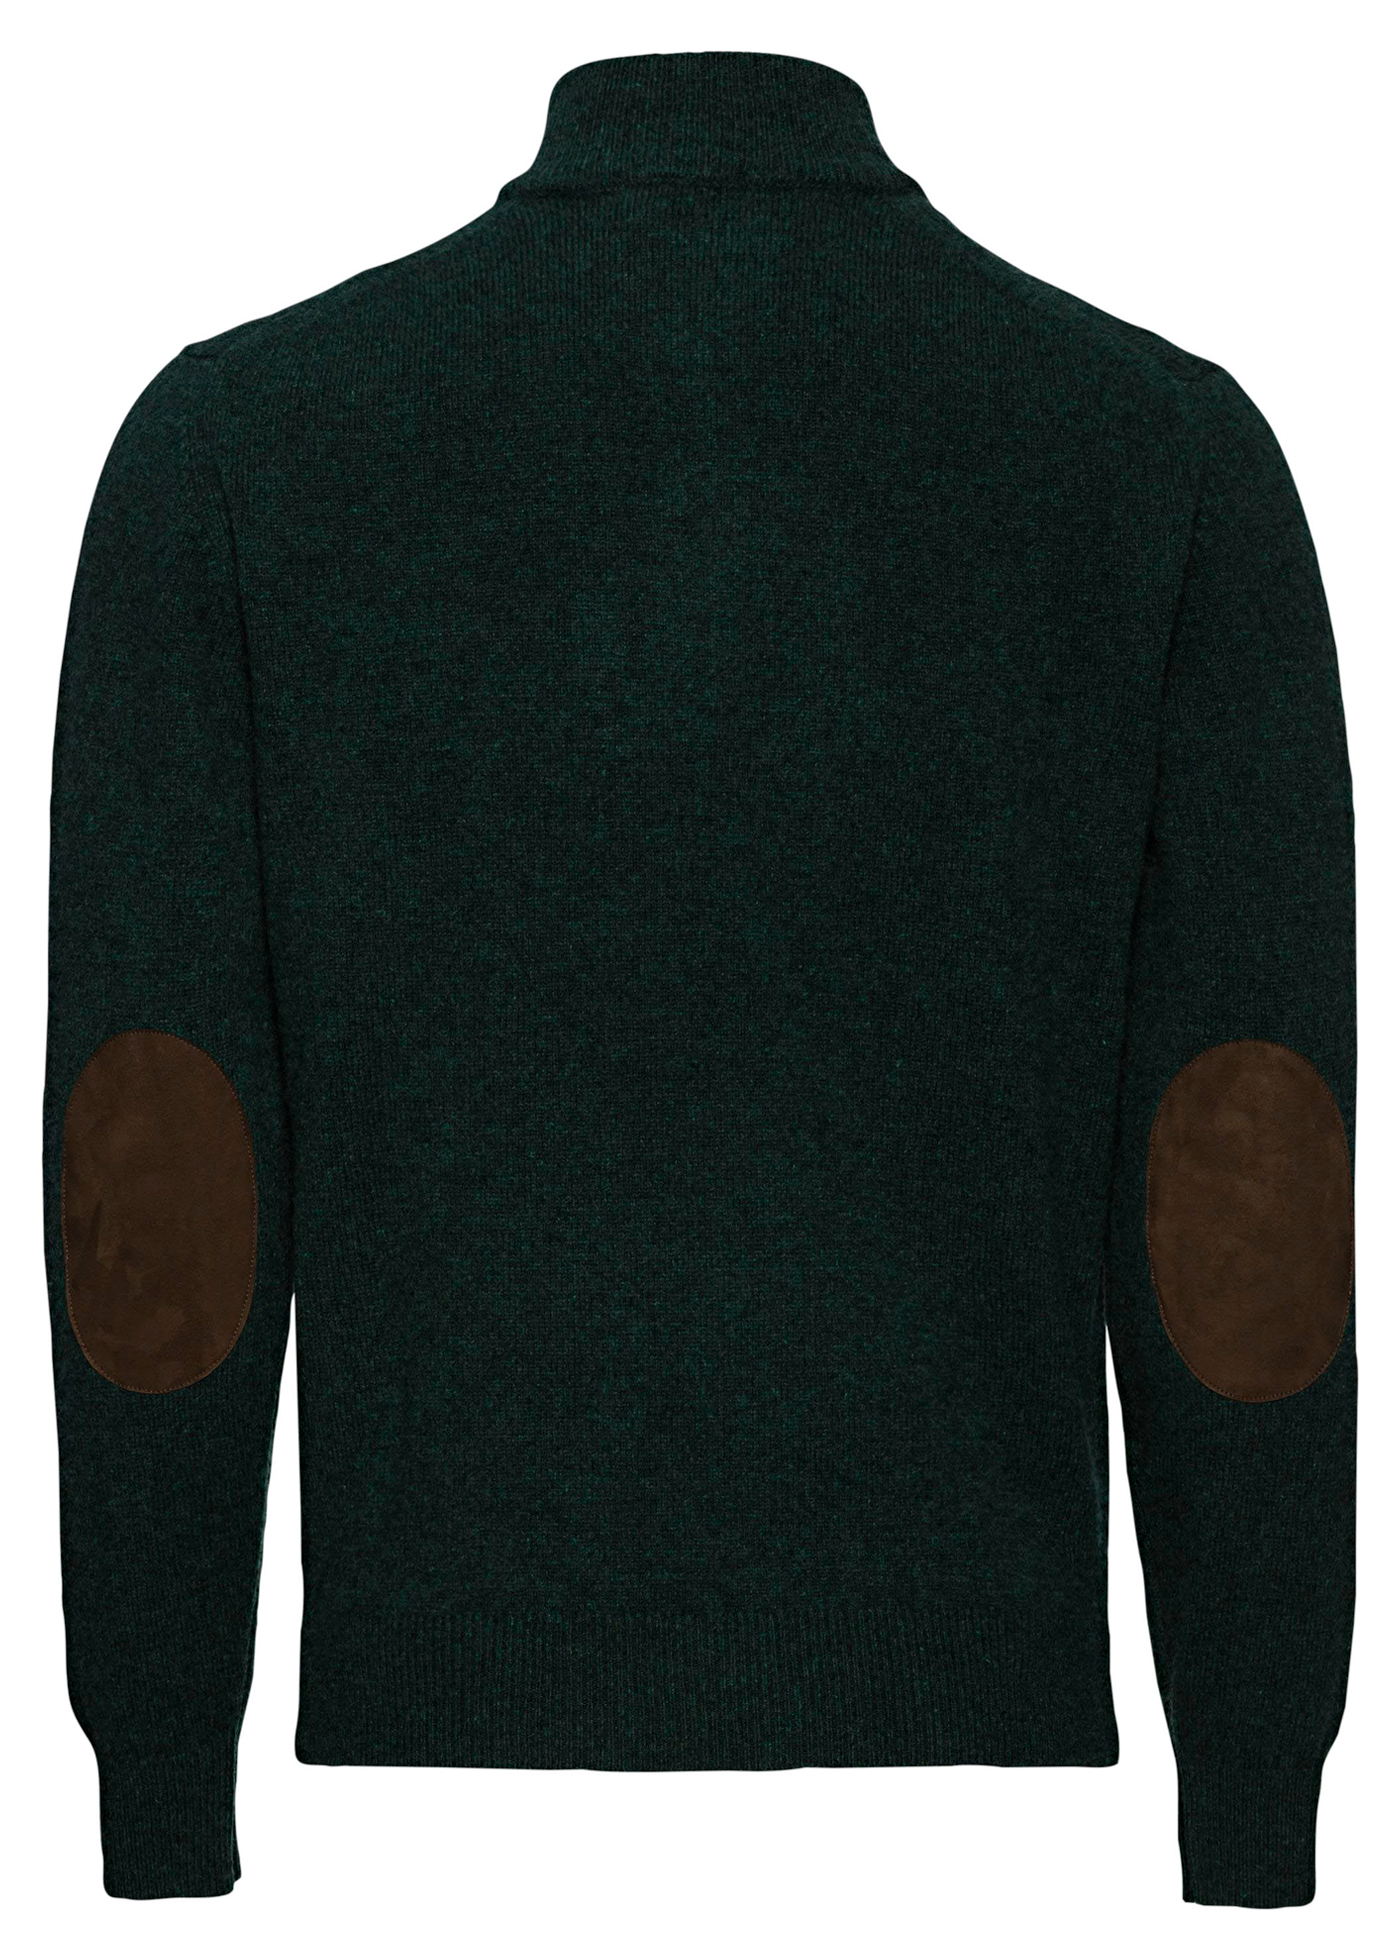 LAMBSWOOL HZIP image number 1